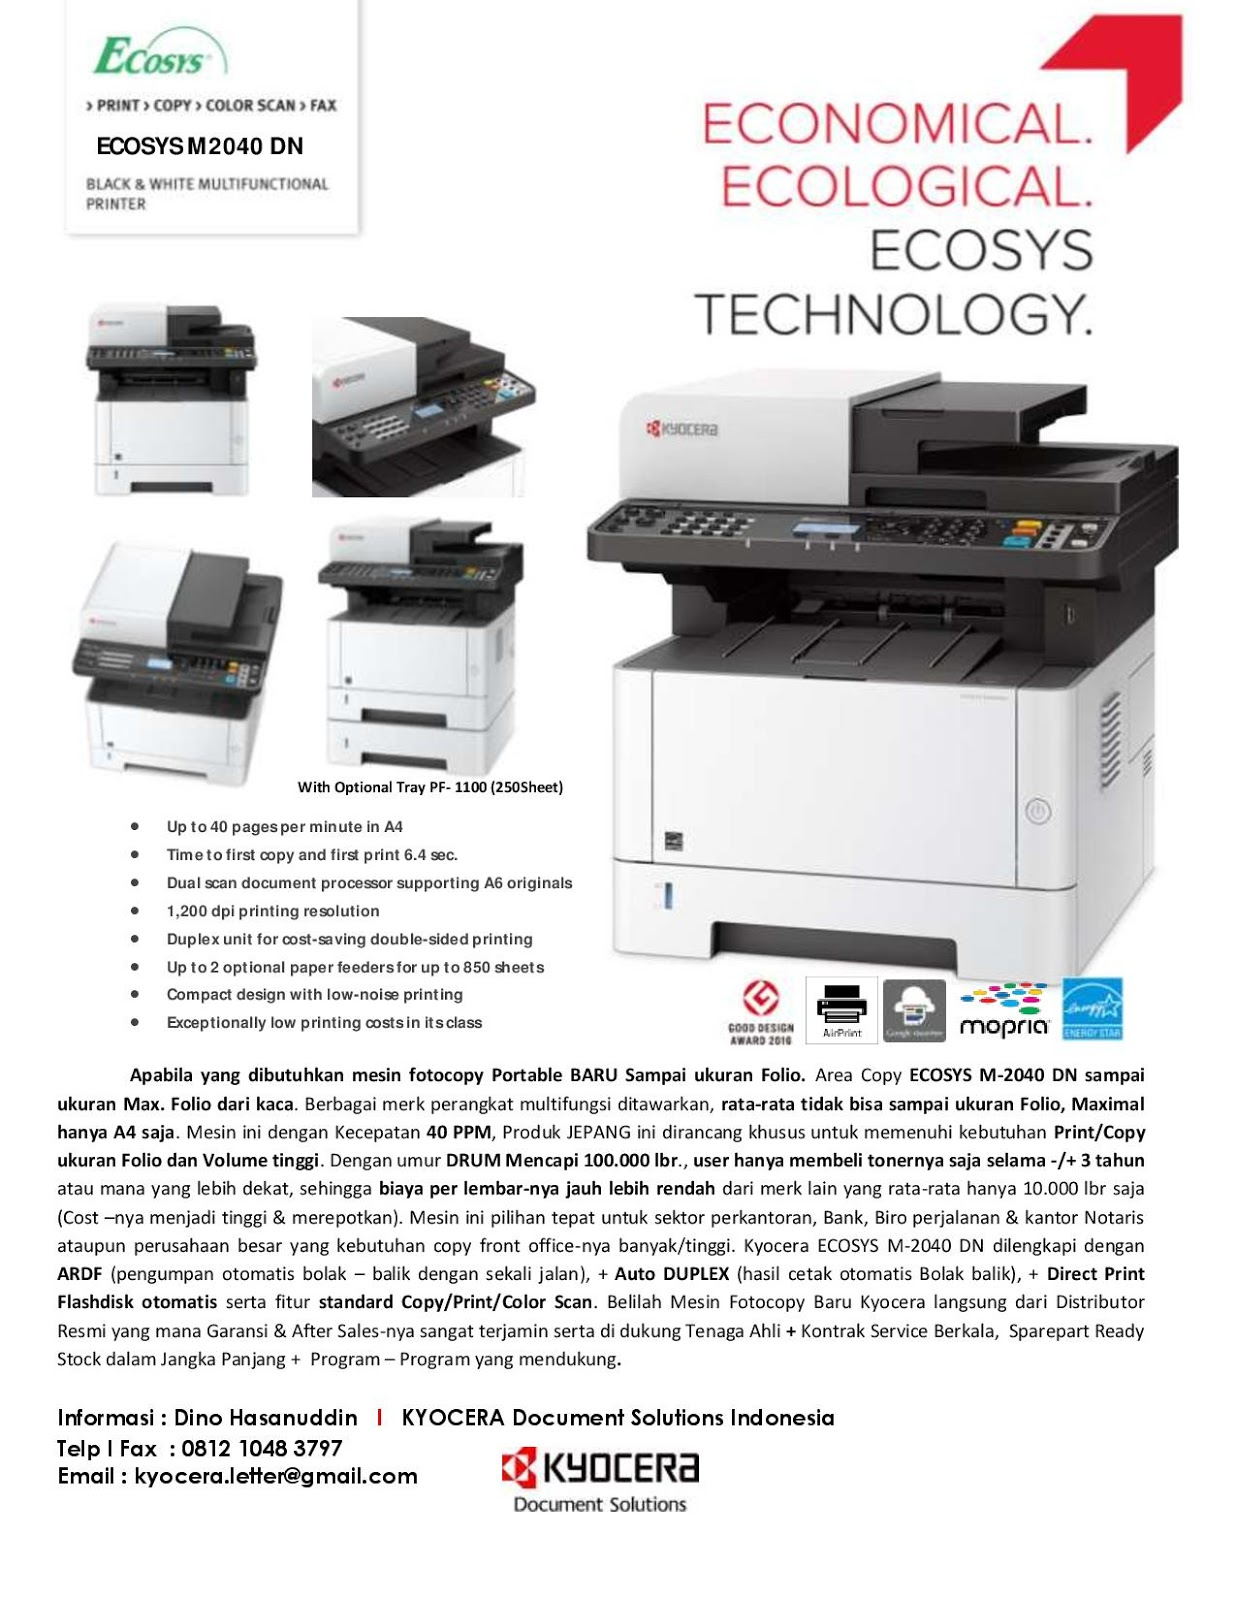 kyocera Digital Copier and Multifunction: 2018